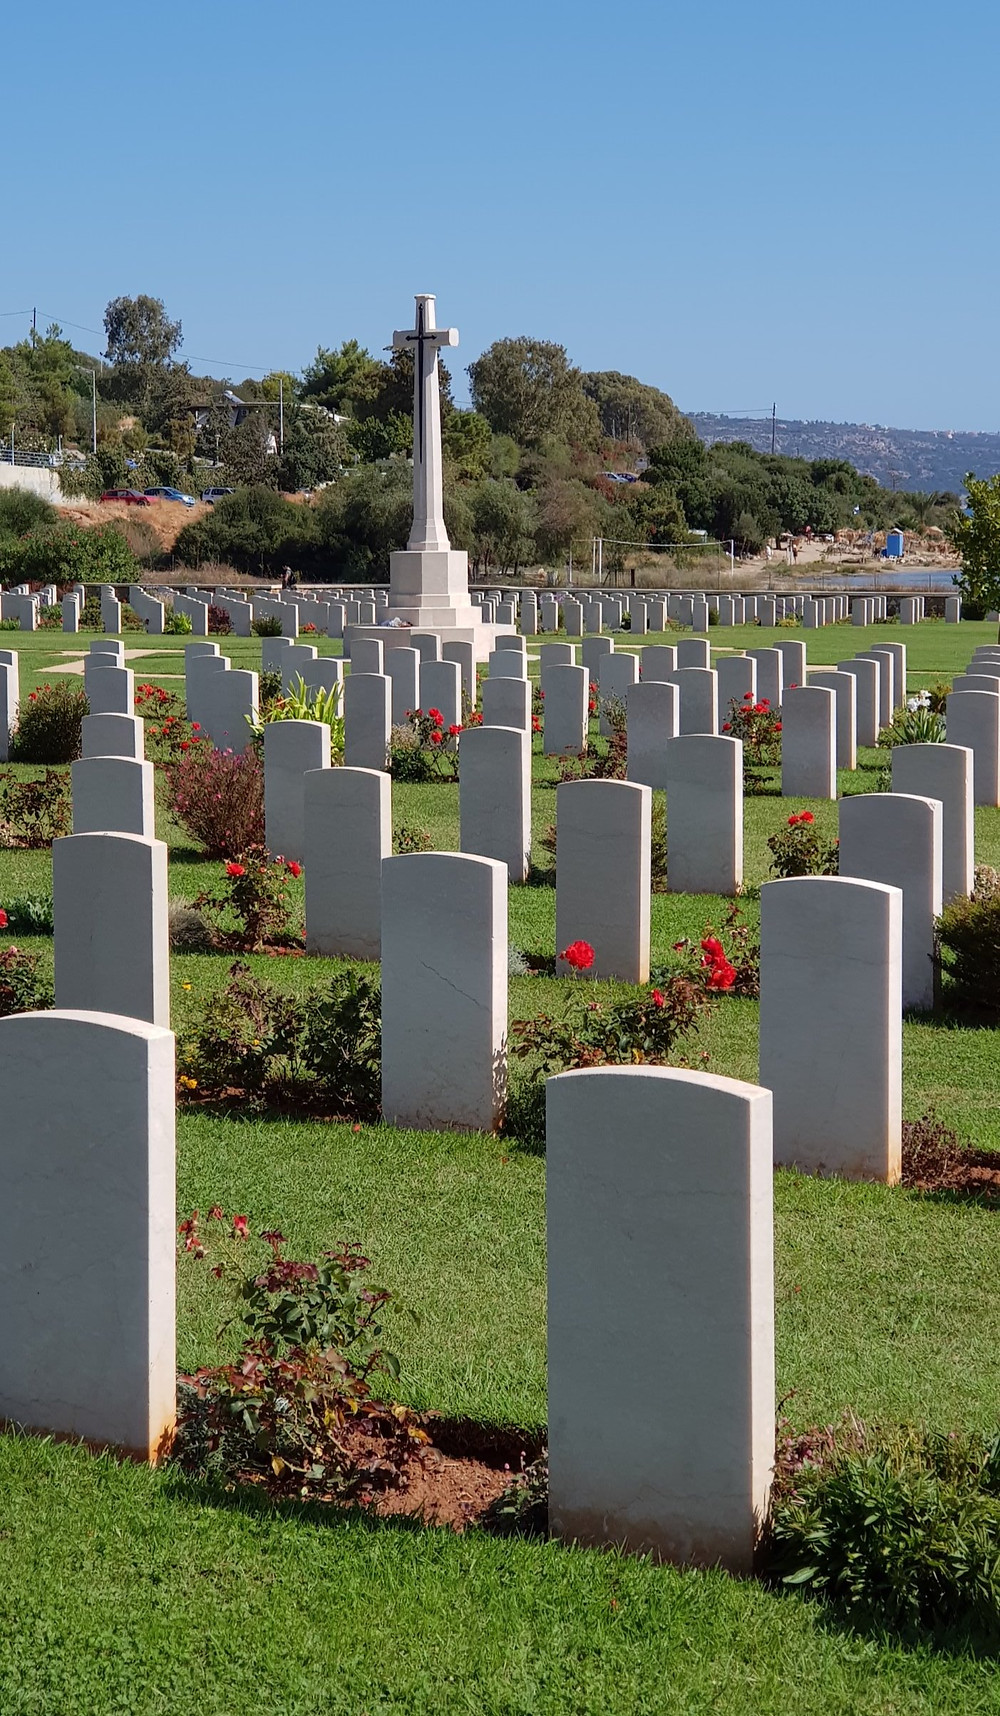 Picture of the Commonwealth Graves Commission Cemetery in Souda Bay, Crete, Greece. courtesy of YourFamilyGenealogist.com